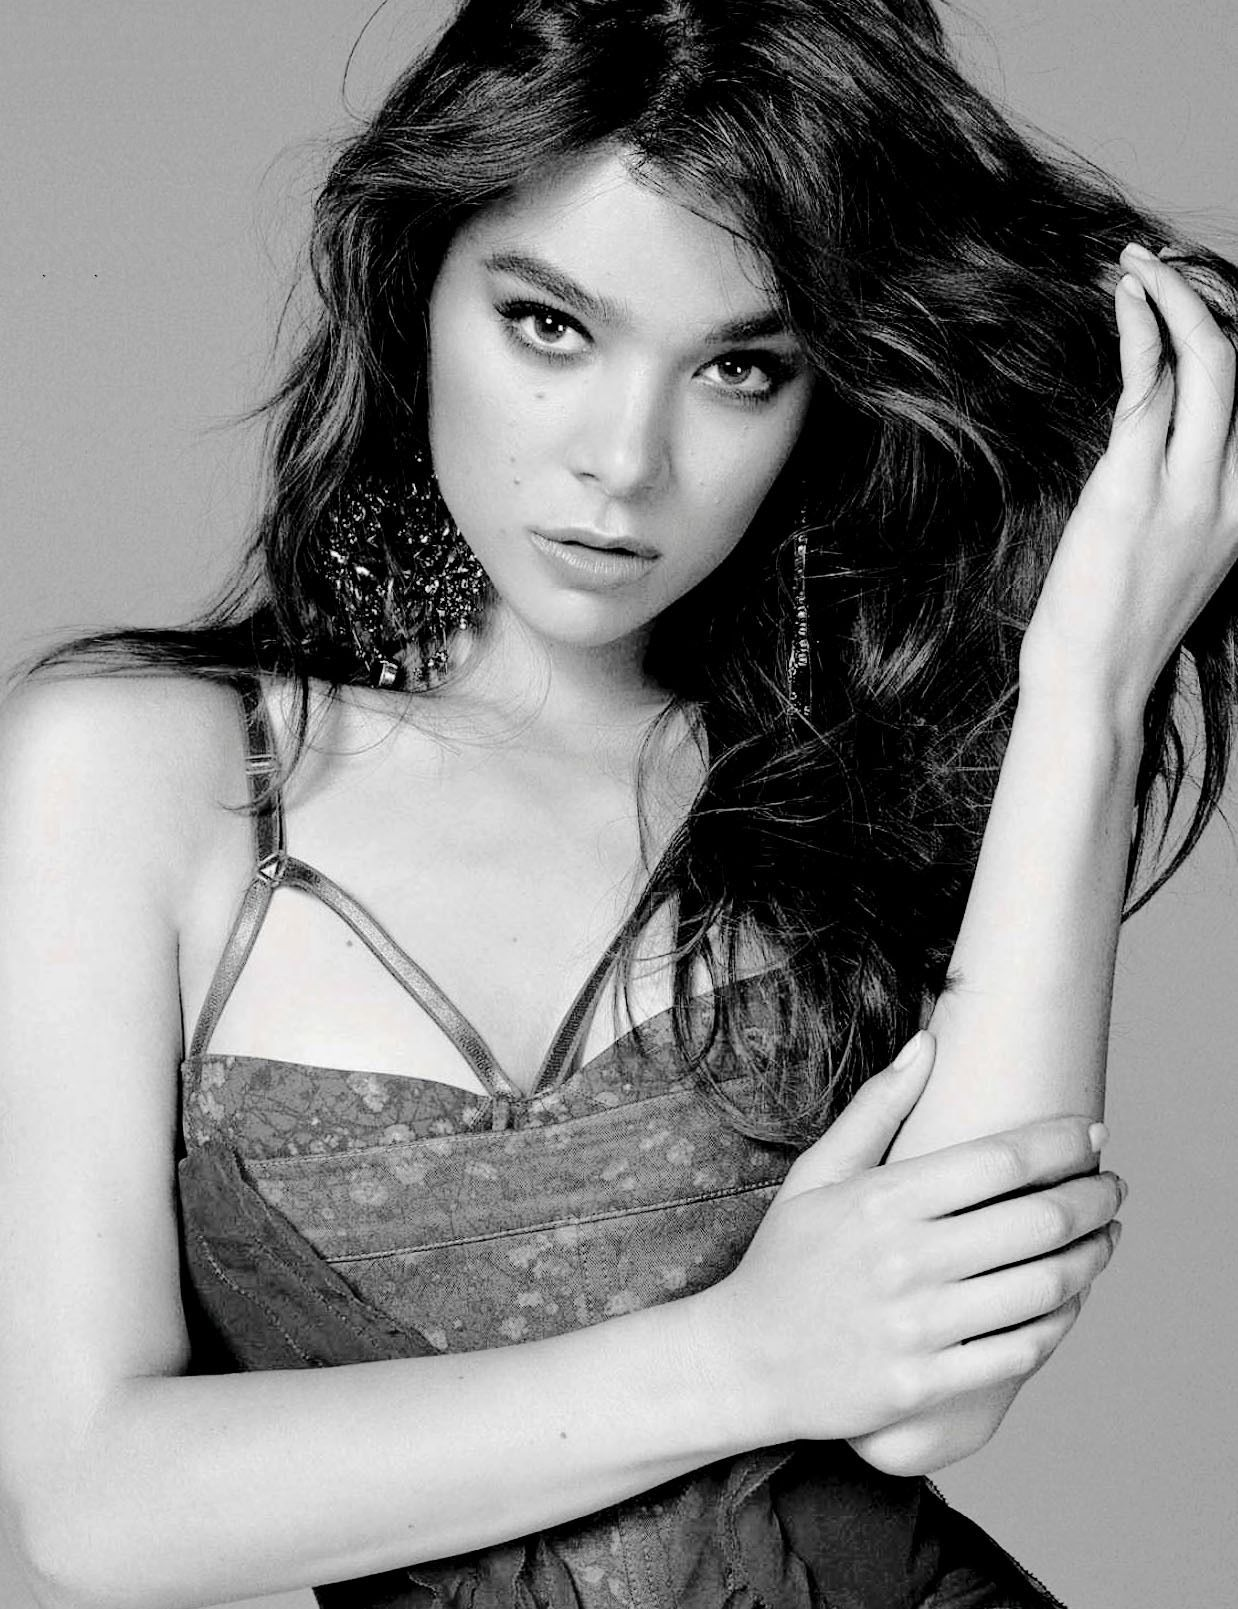 Hailee Steinfeld - Marie Claire February 2018 Issue